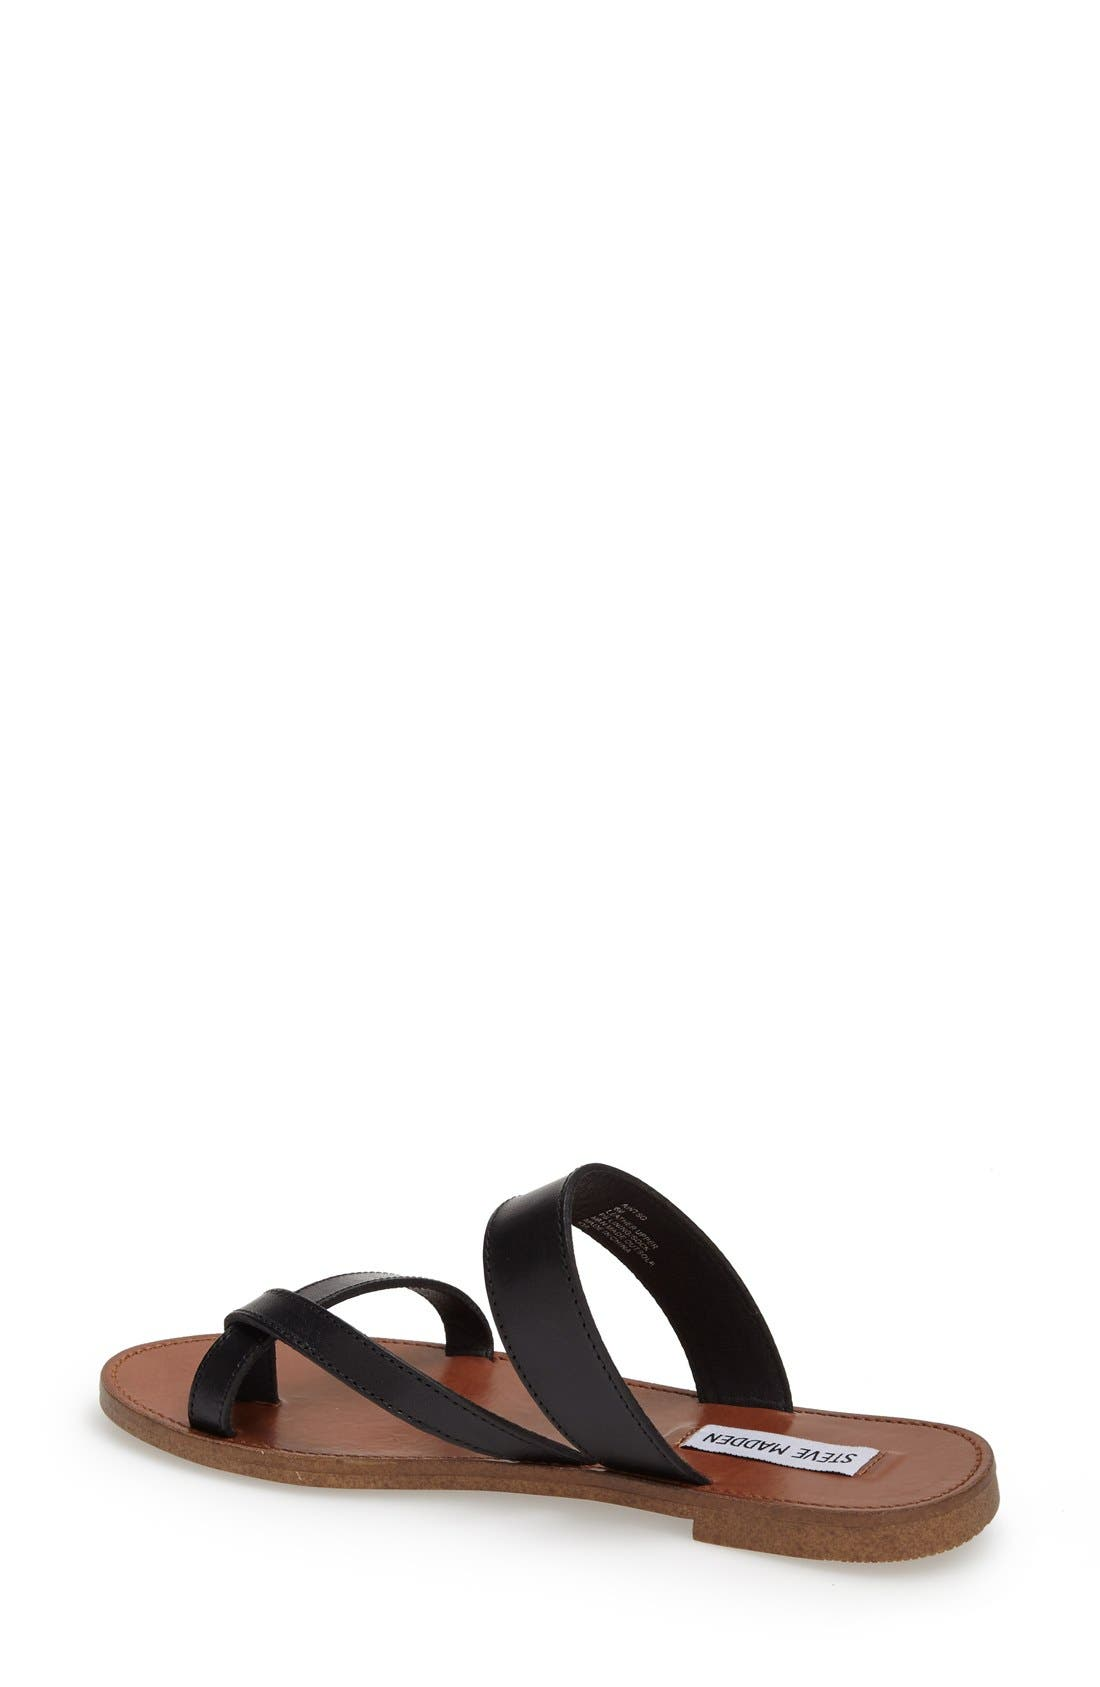 'Aintso' Strappy Leather Toe Ring Sandal,                             Alternate thumbnail 2, color,                             001